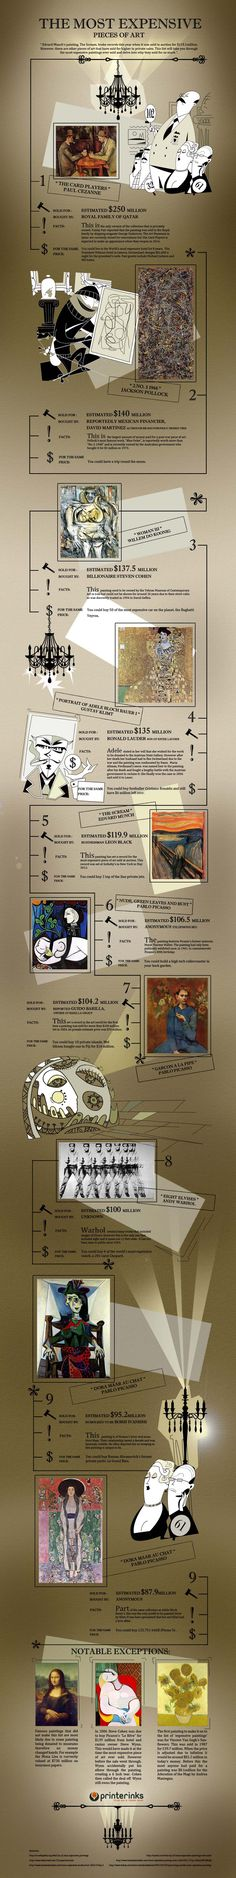 Infographic: The Most Expensive Pieces of Art Infographic